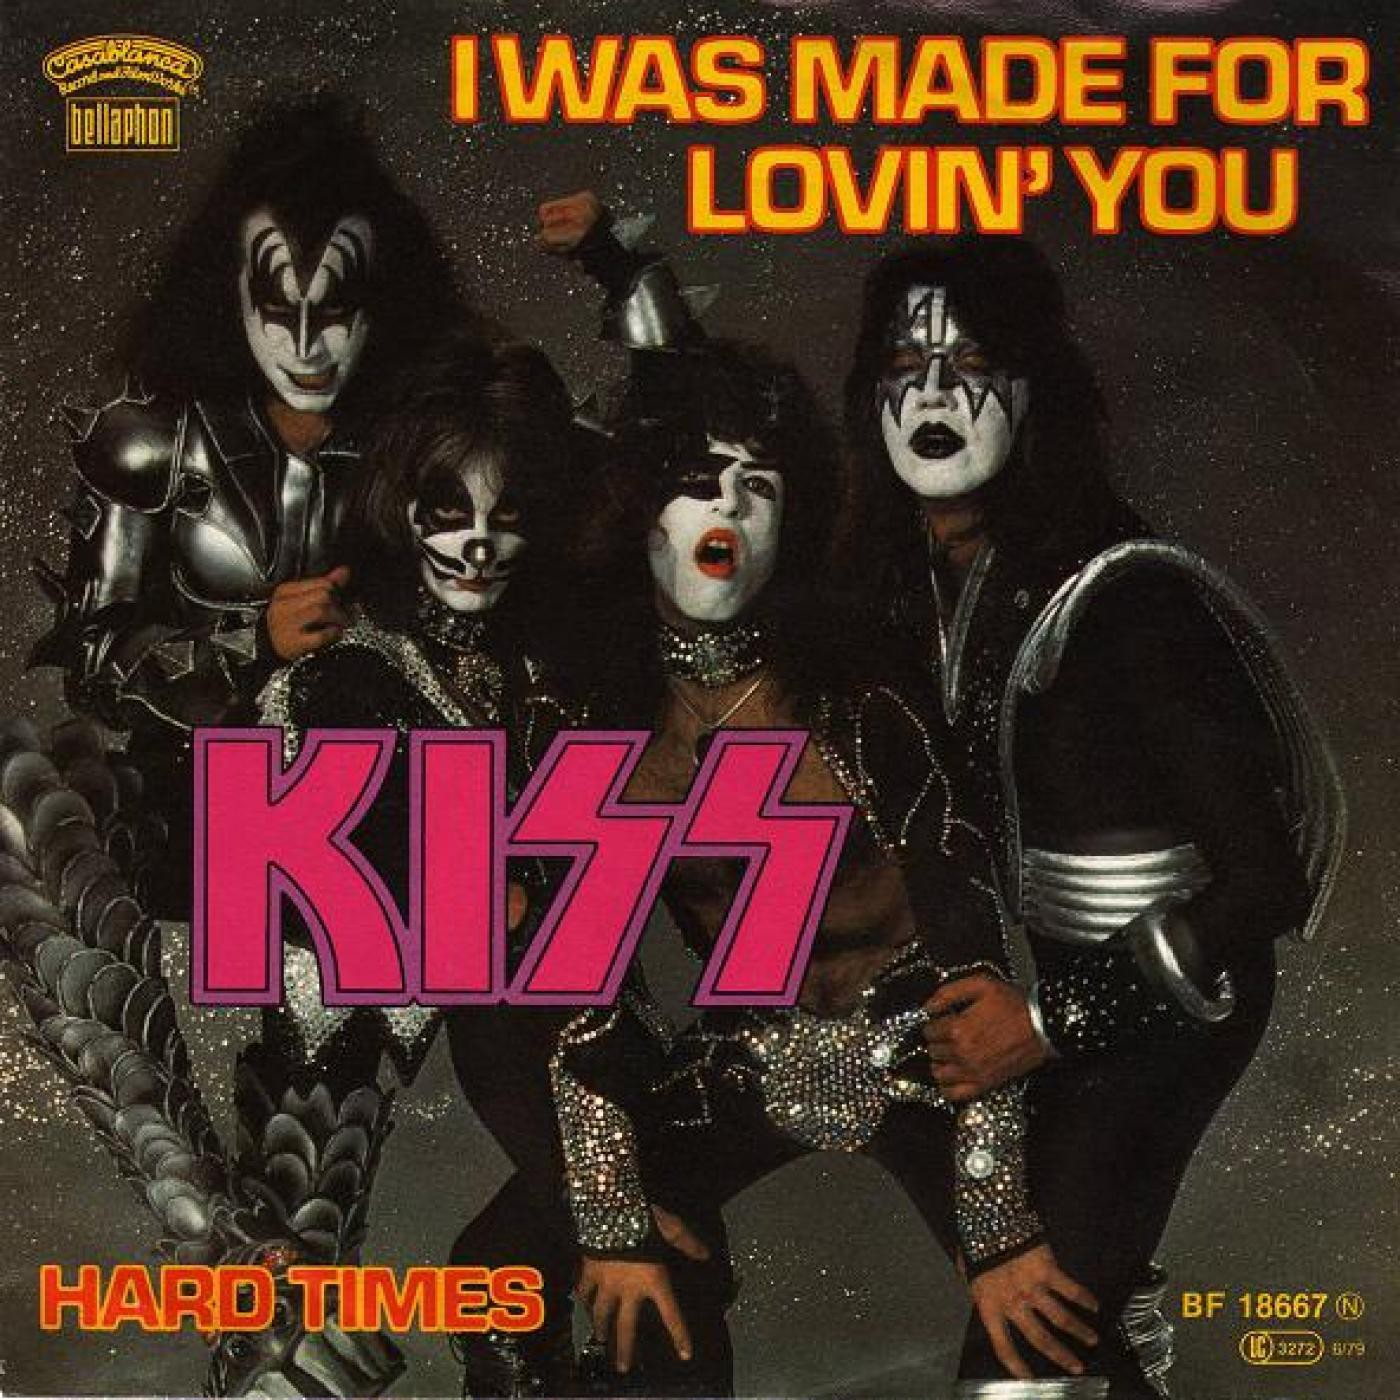 KISS - I was made for loving you (1979)